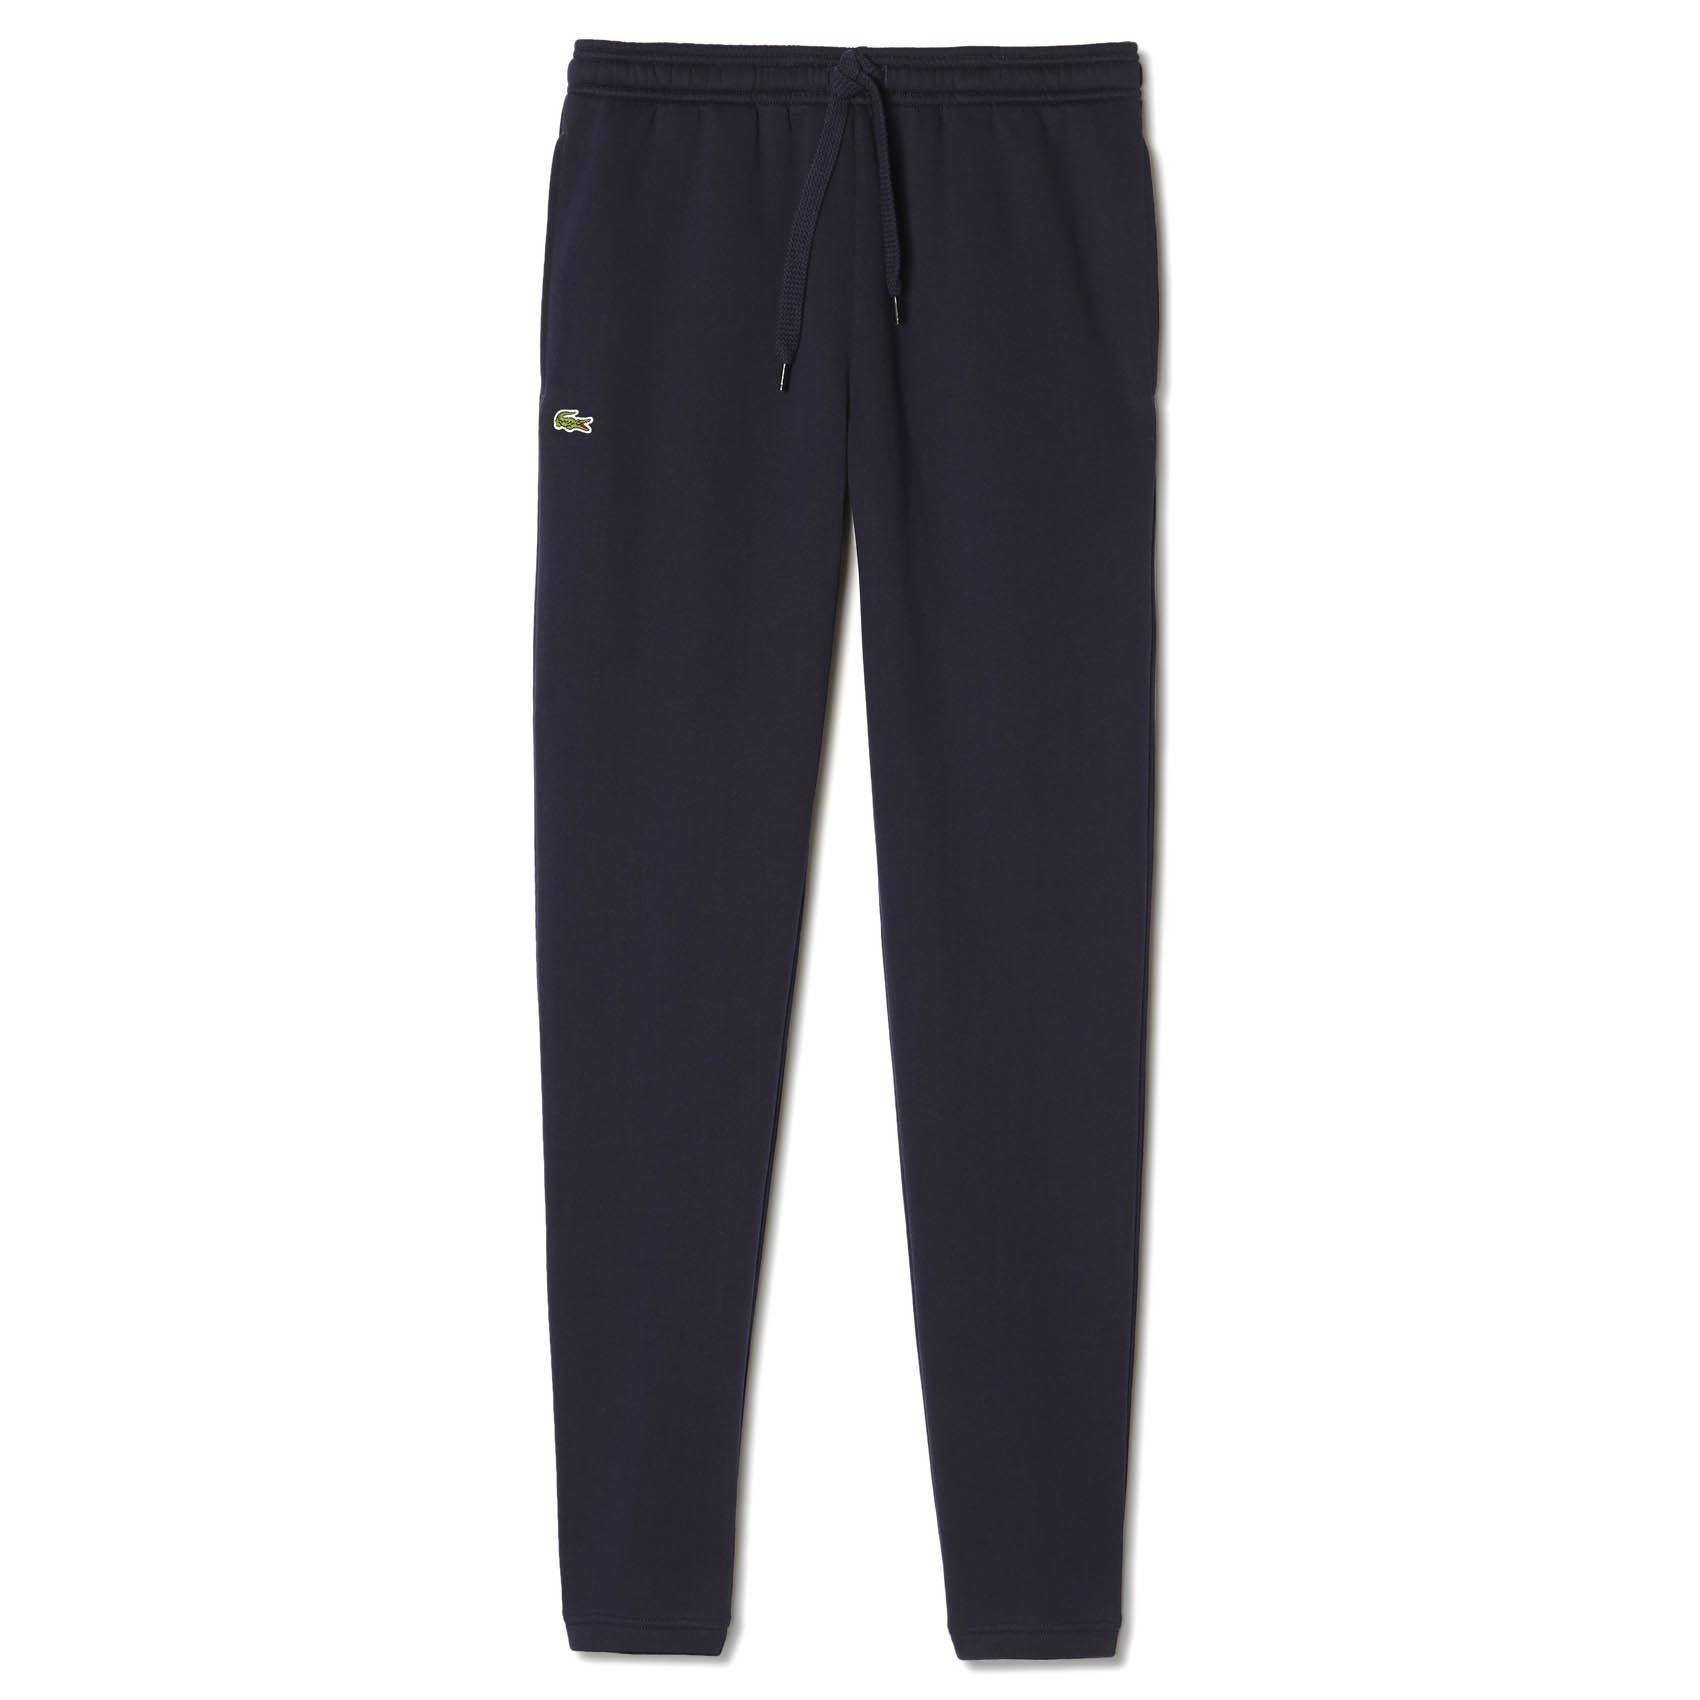 bd1993ba8 Lacoste Sport Mens Fleece Sweatpants - Navy - Tennisnuts.com